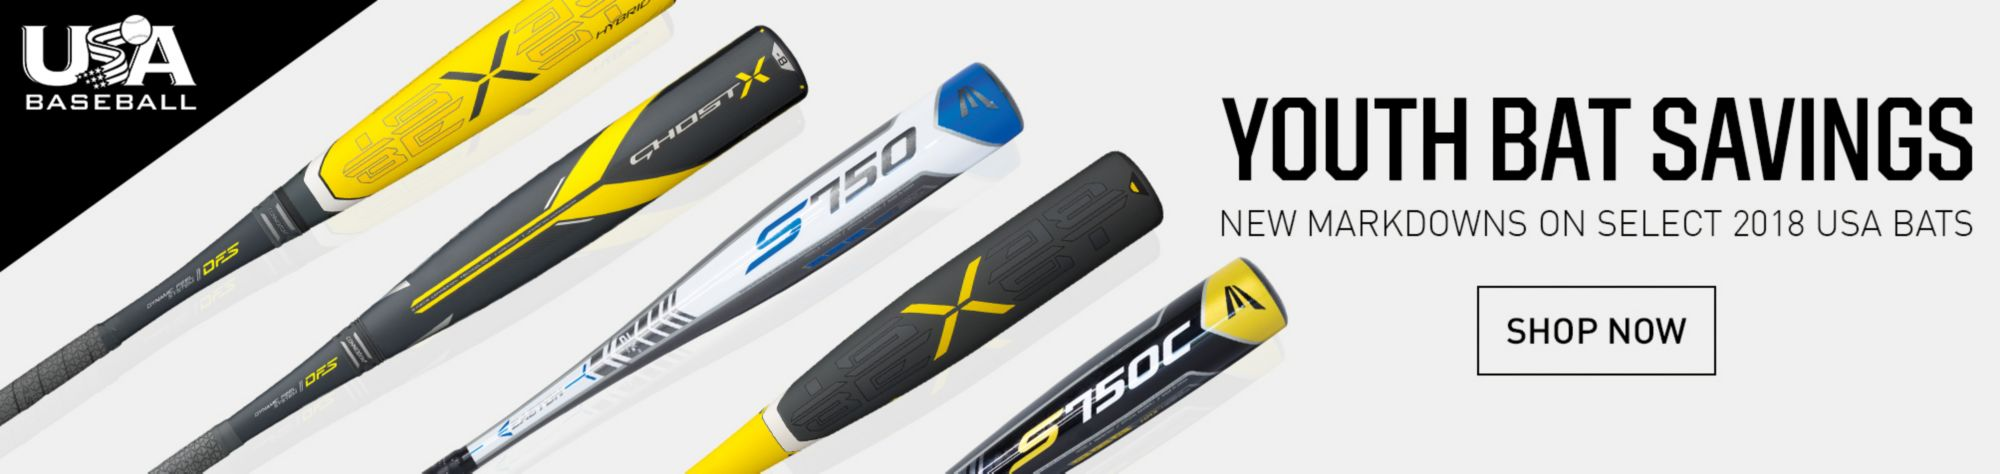 USA BAT SAVINGS! New Markdowns on Easton, Rawlings, Louisville Slugger & More Shop Bat Deals